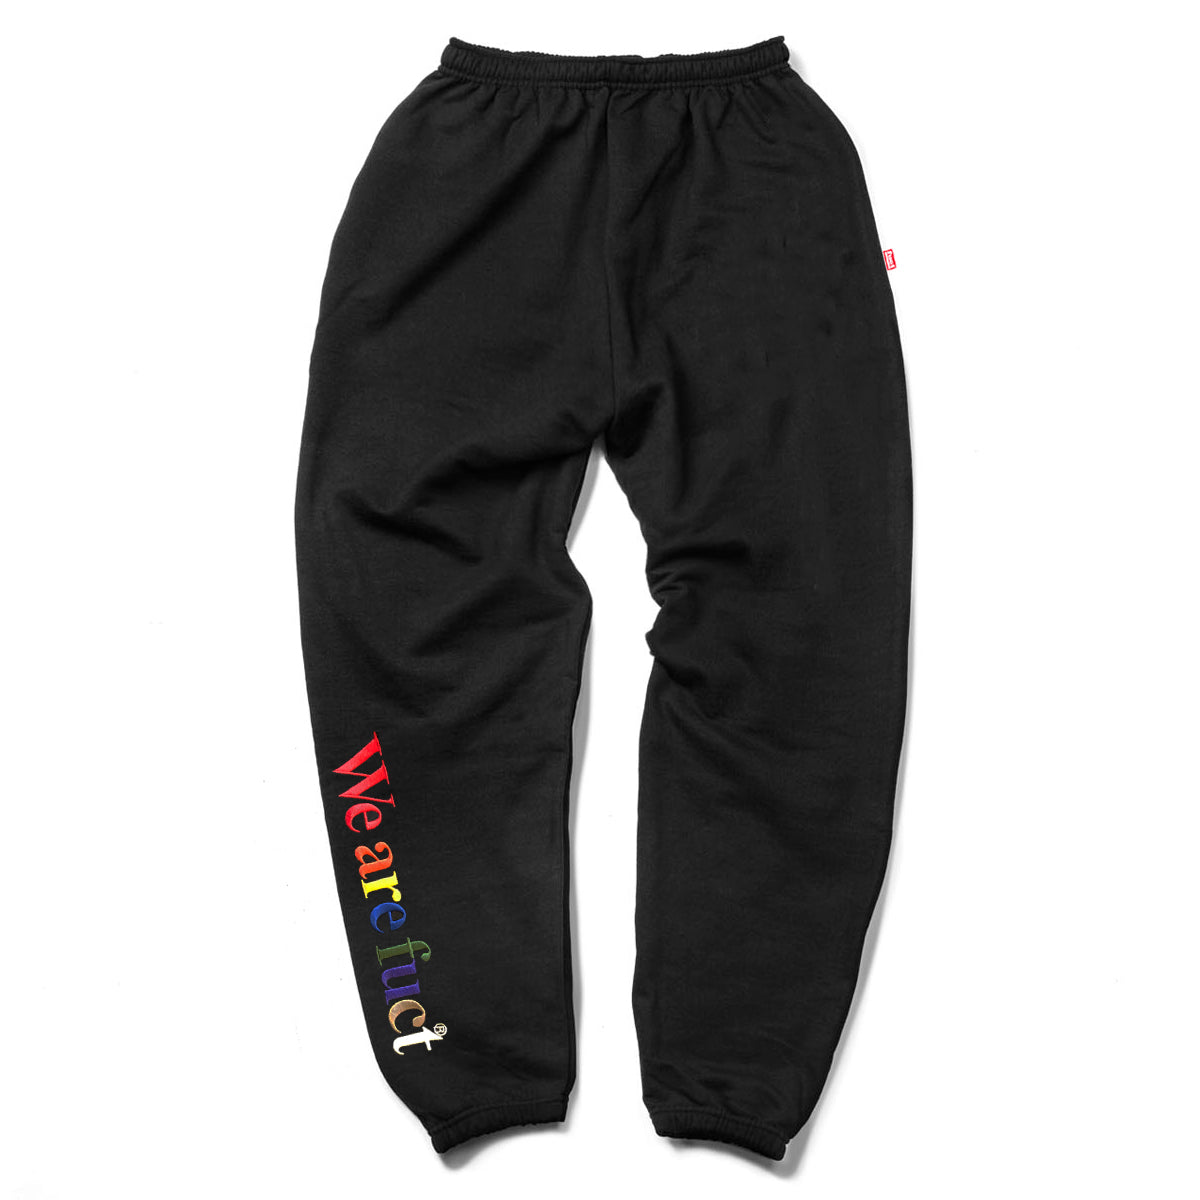 WE ARE FUCT SWEATPANTS